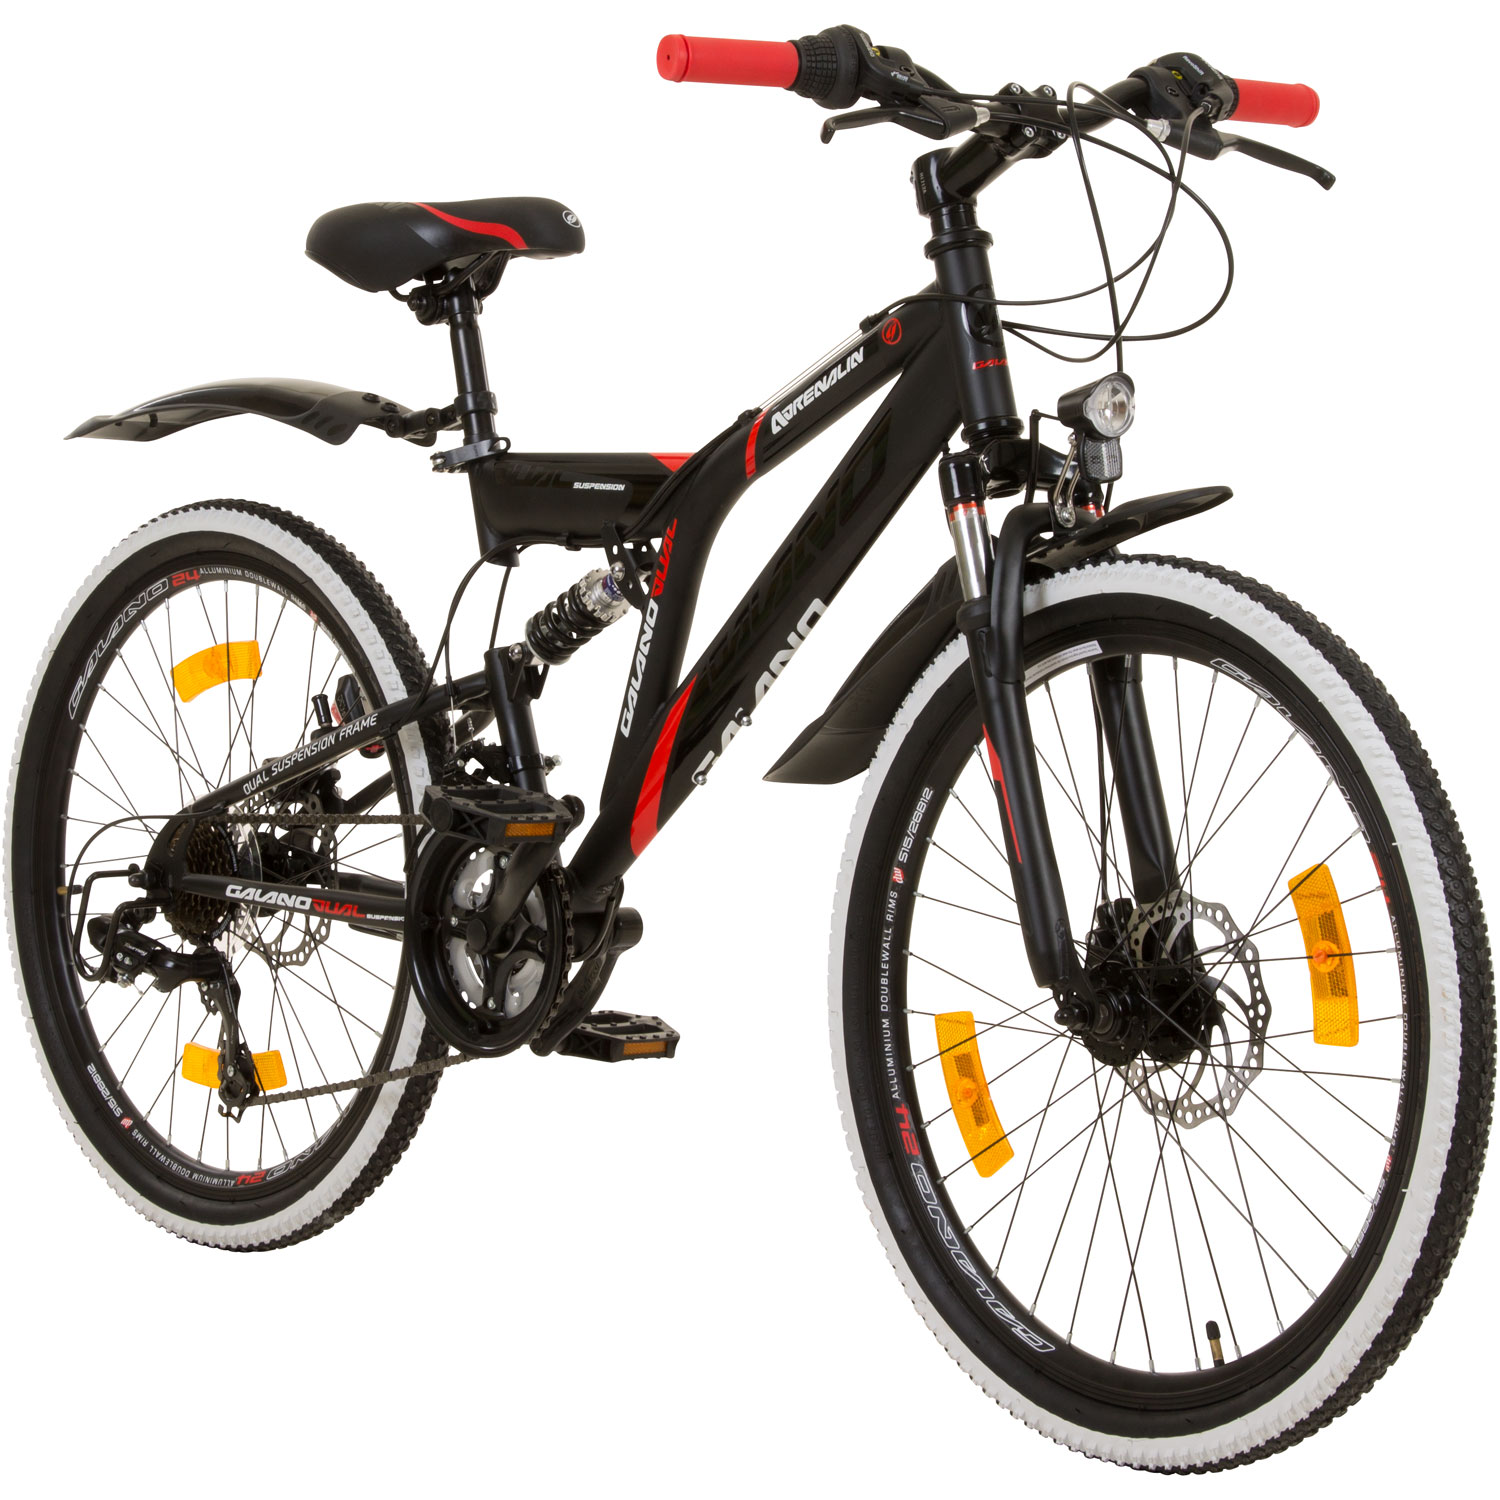 24 zoll mtb fully galano adrenalin ds mountainbike stvzo jugendfahrrad fahrrad jugendfahrrad 24 zoll. Black Bedroom Furniture Sets. Home Design Ideas